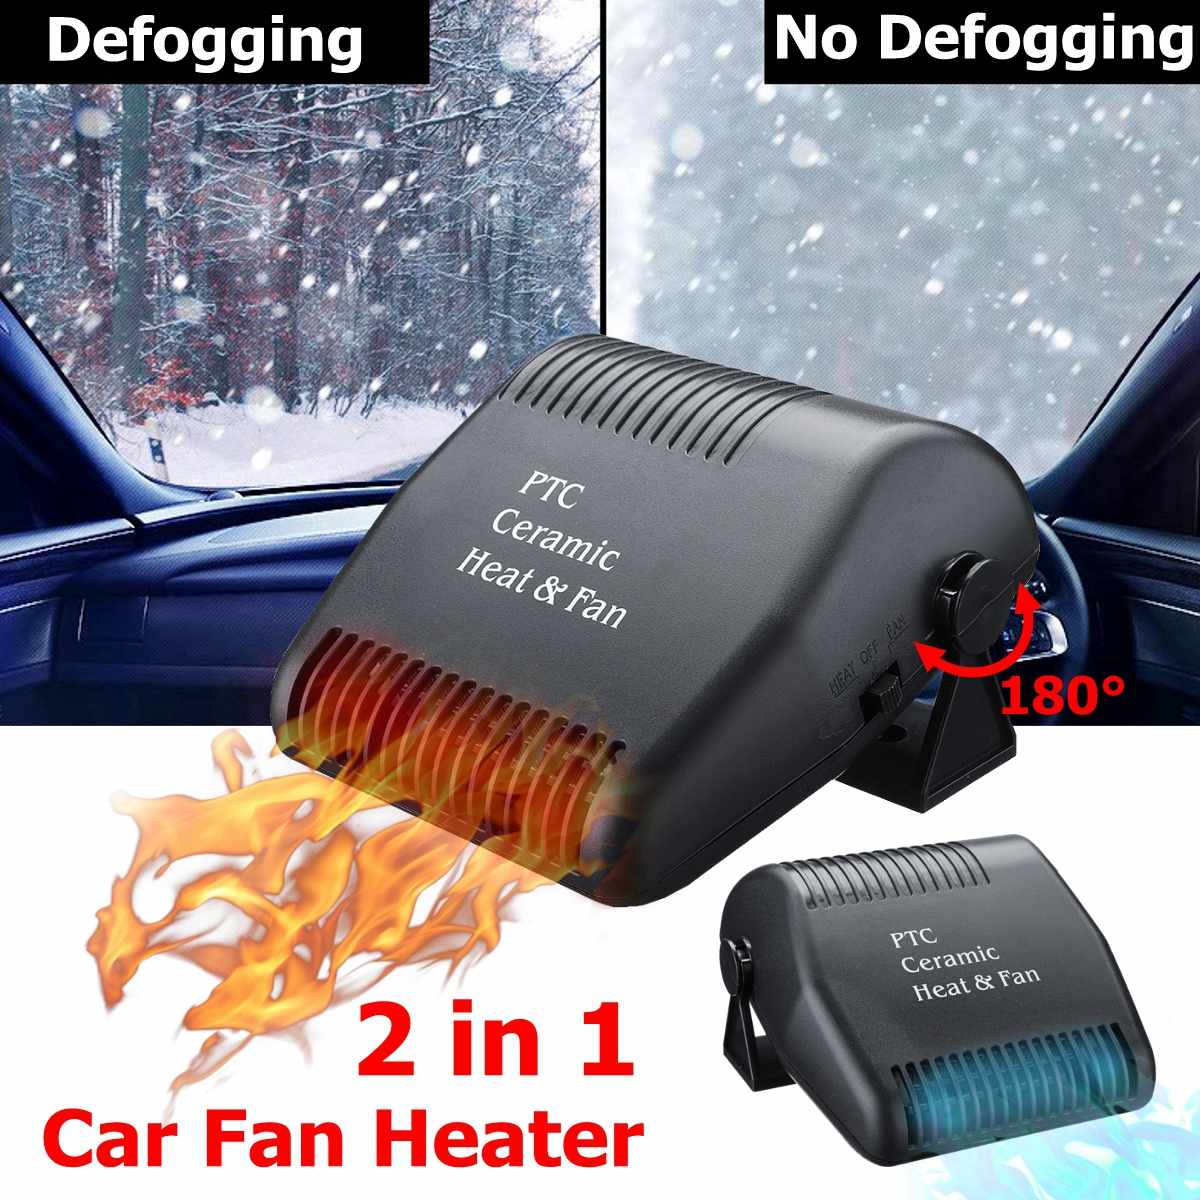 12V 150W  Portable Auto Car Fan Heater Demister Defroster Car Heater  Heating Windshield Defroster demister 180 degree rotation|Heating & Fans| |  - title=